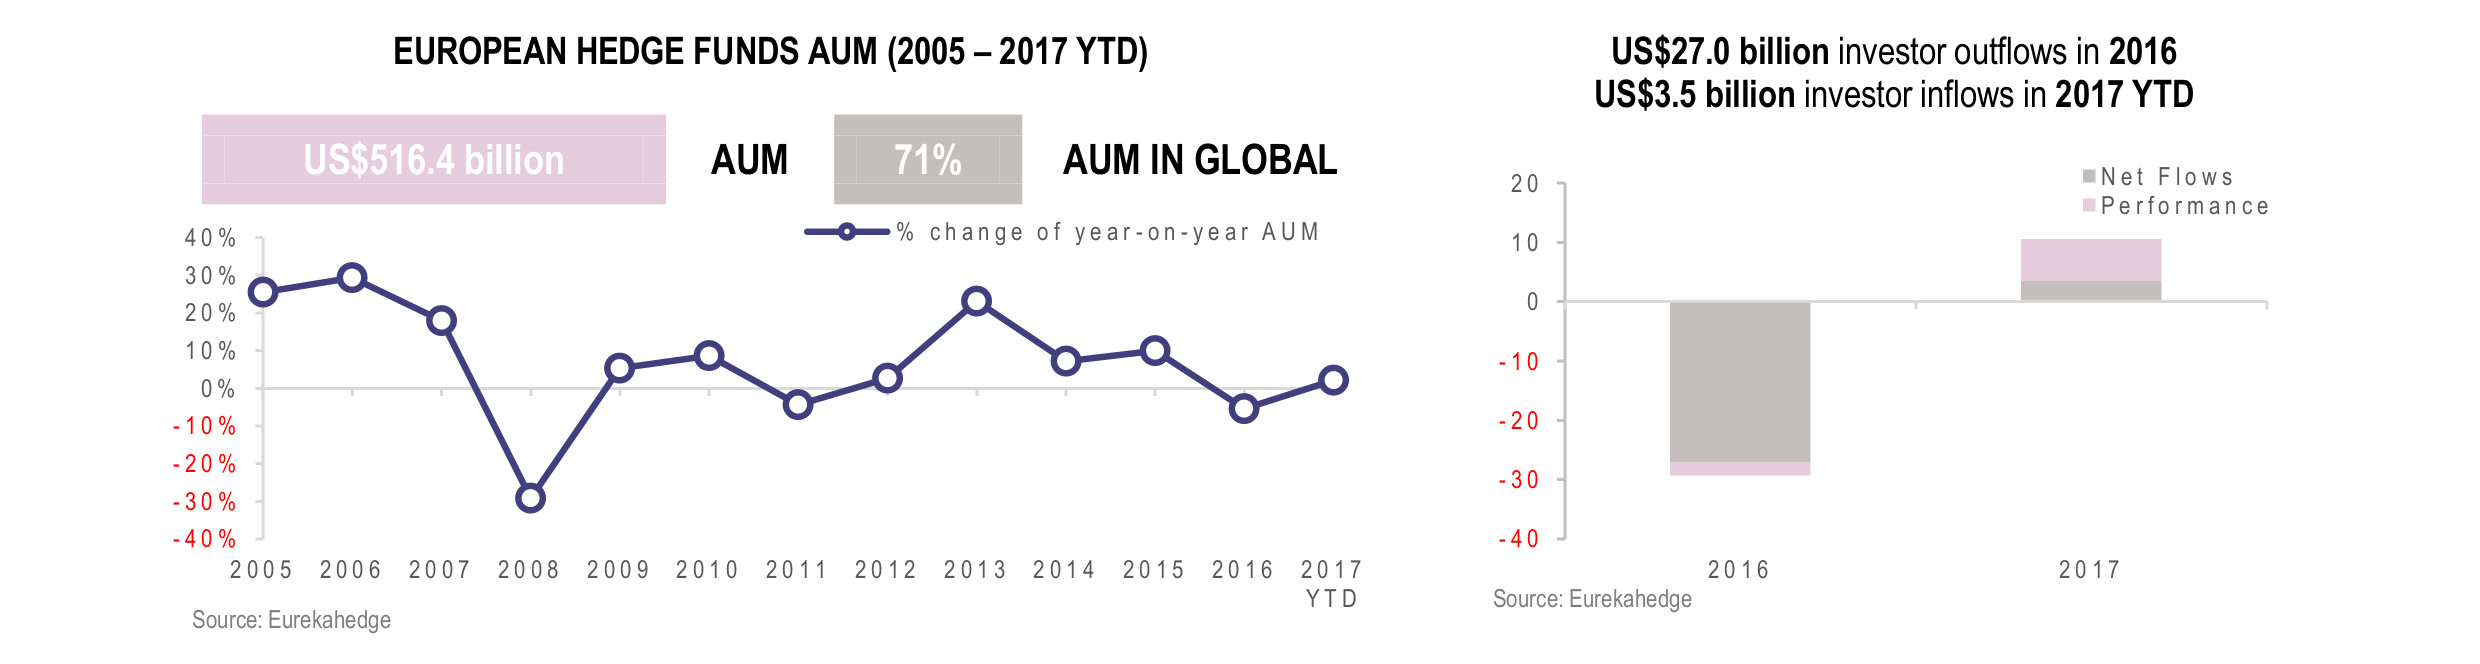 European Hedge Fund Infographic July 2017- AUM